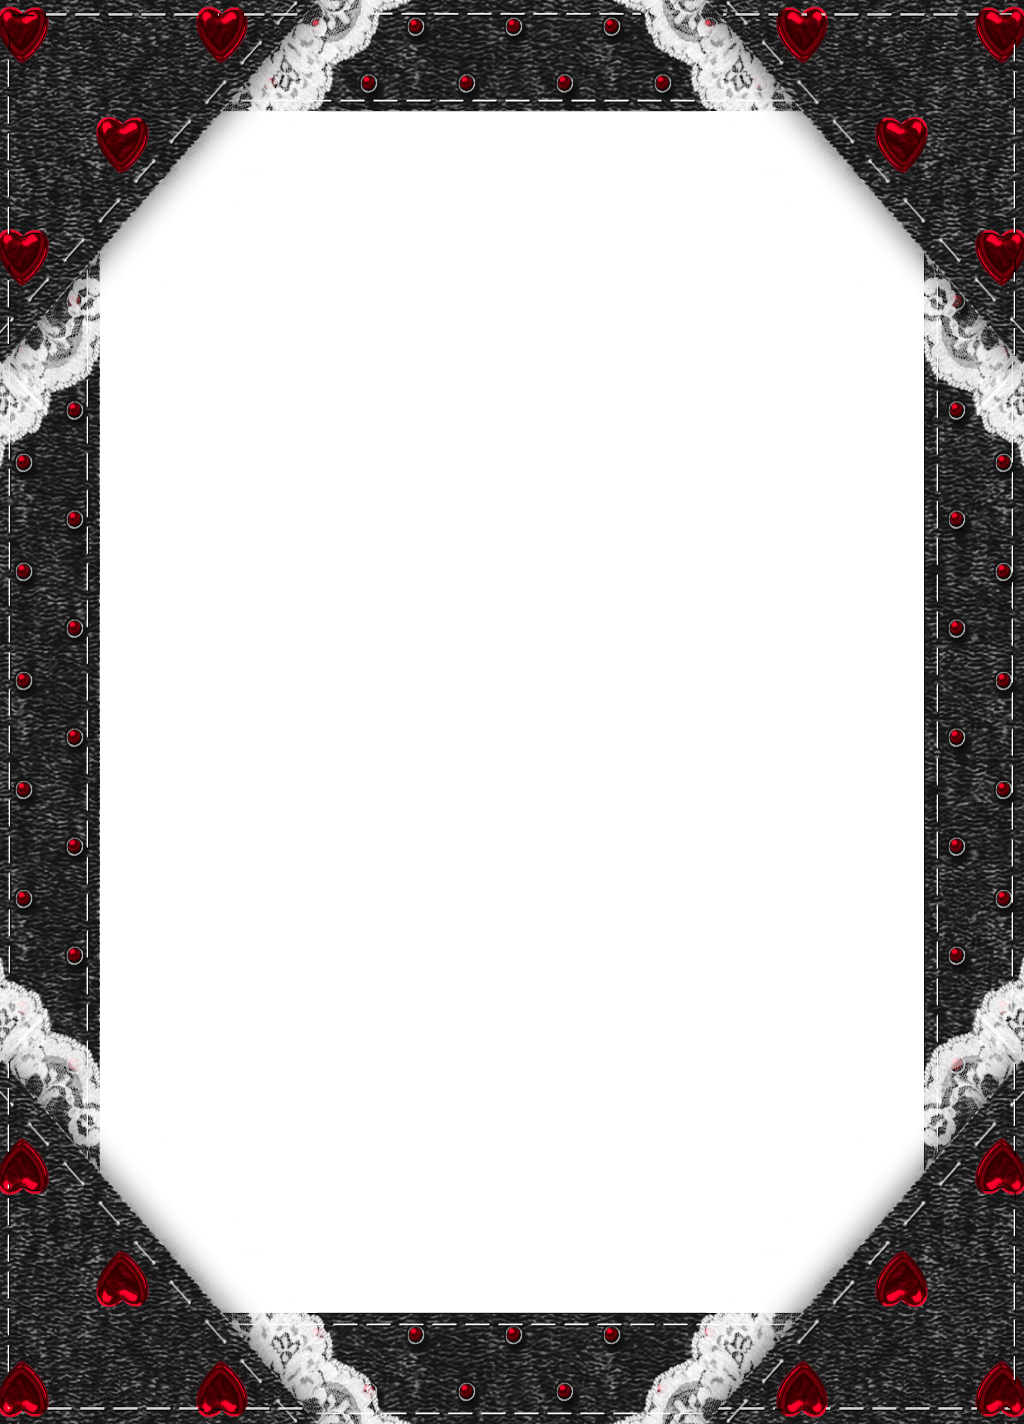 Black Transparent Frame with Red Hearts   Gallery ... vector download